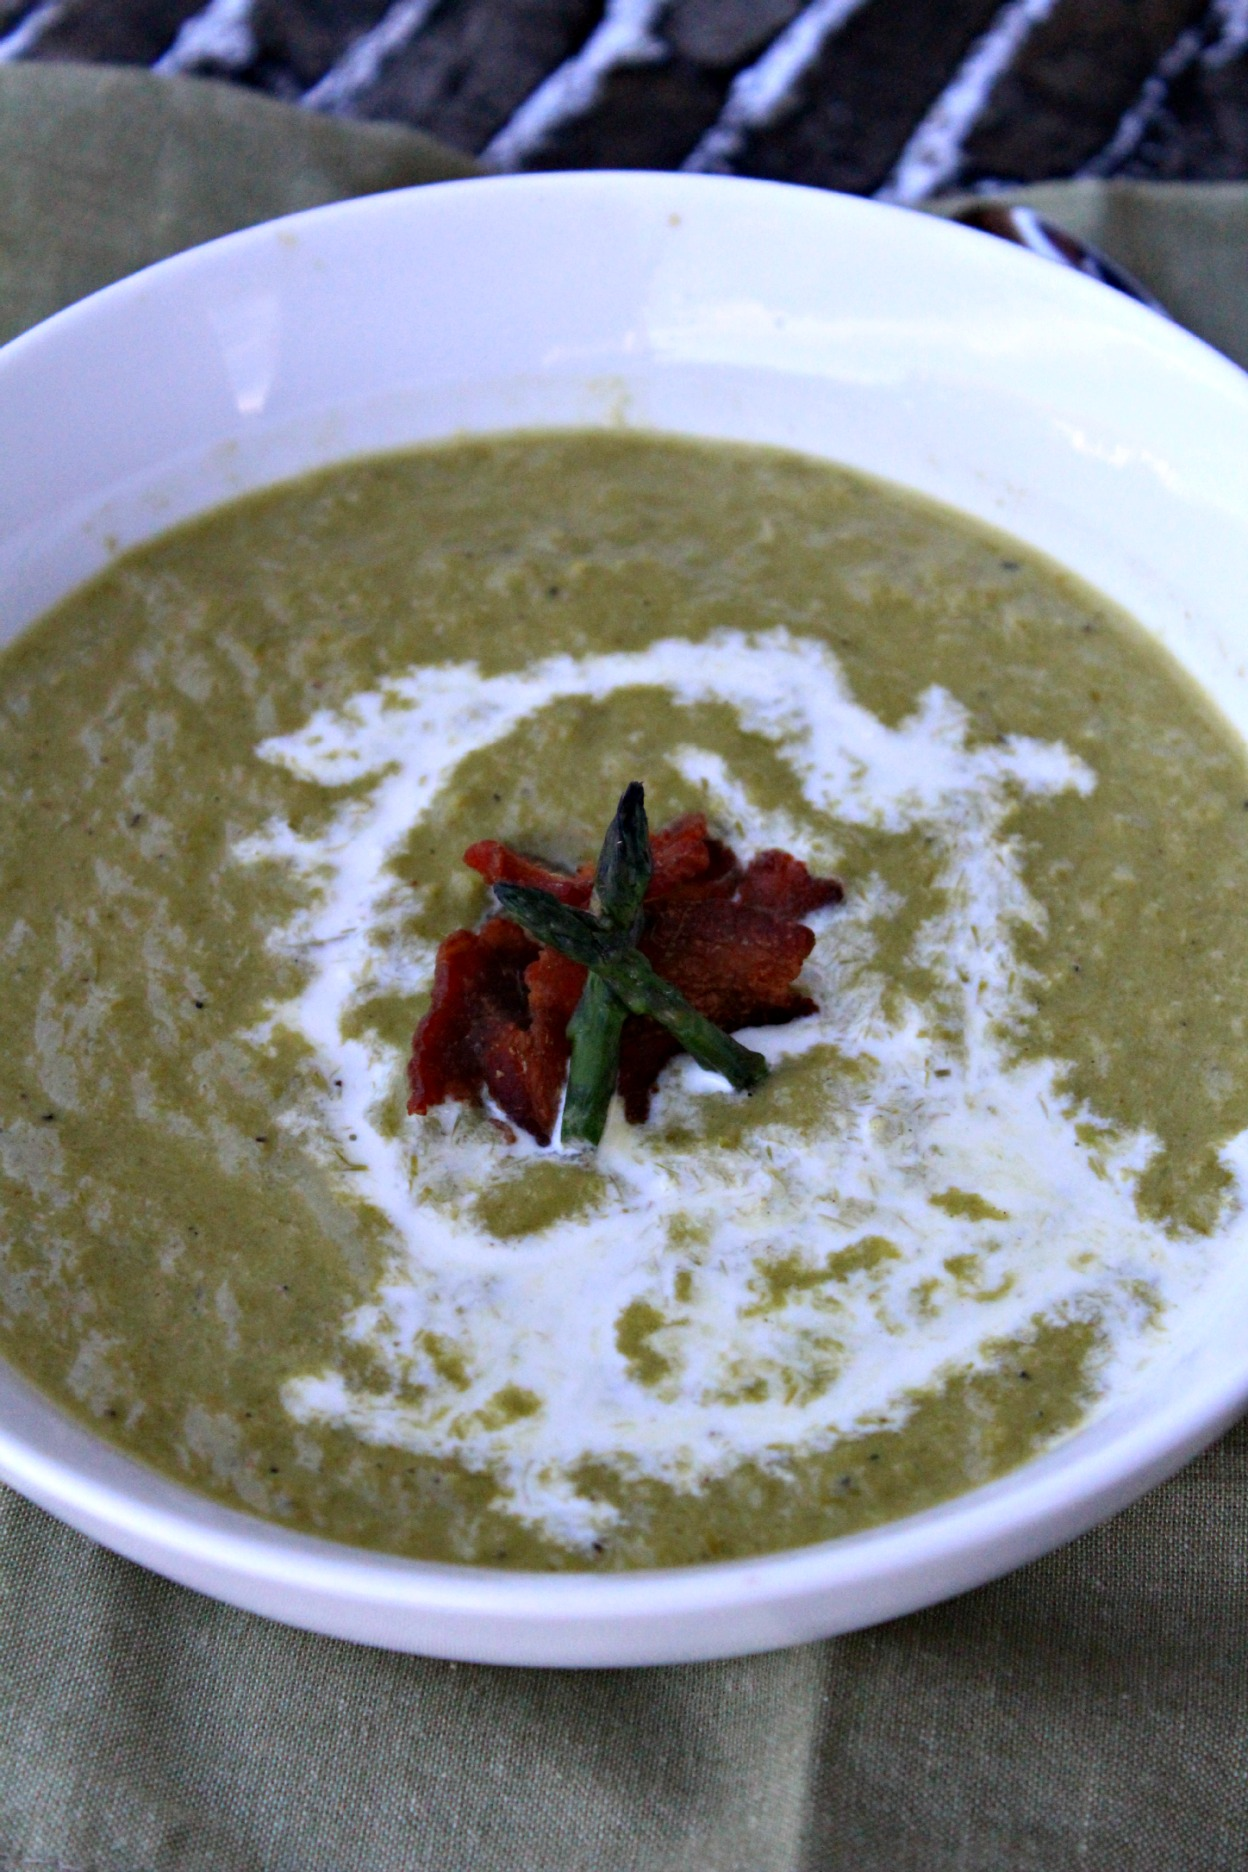 cream of asparagus soup readingfoodie stir addicted to recipes